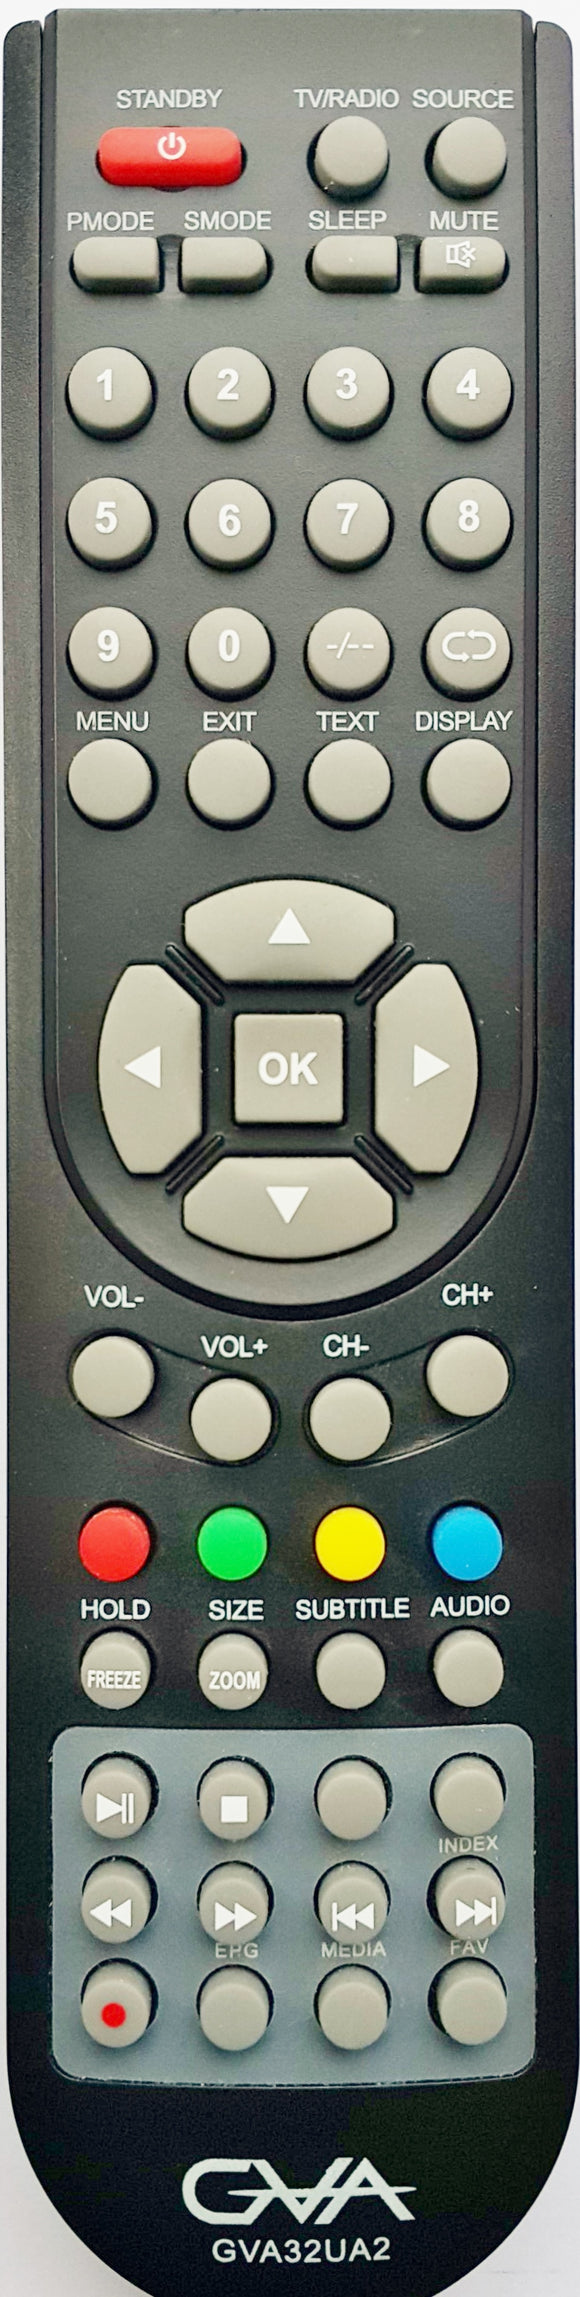 ORIGINAL GVA REMOTE CONTROL - GVA32UA2 TV